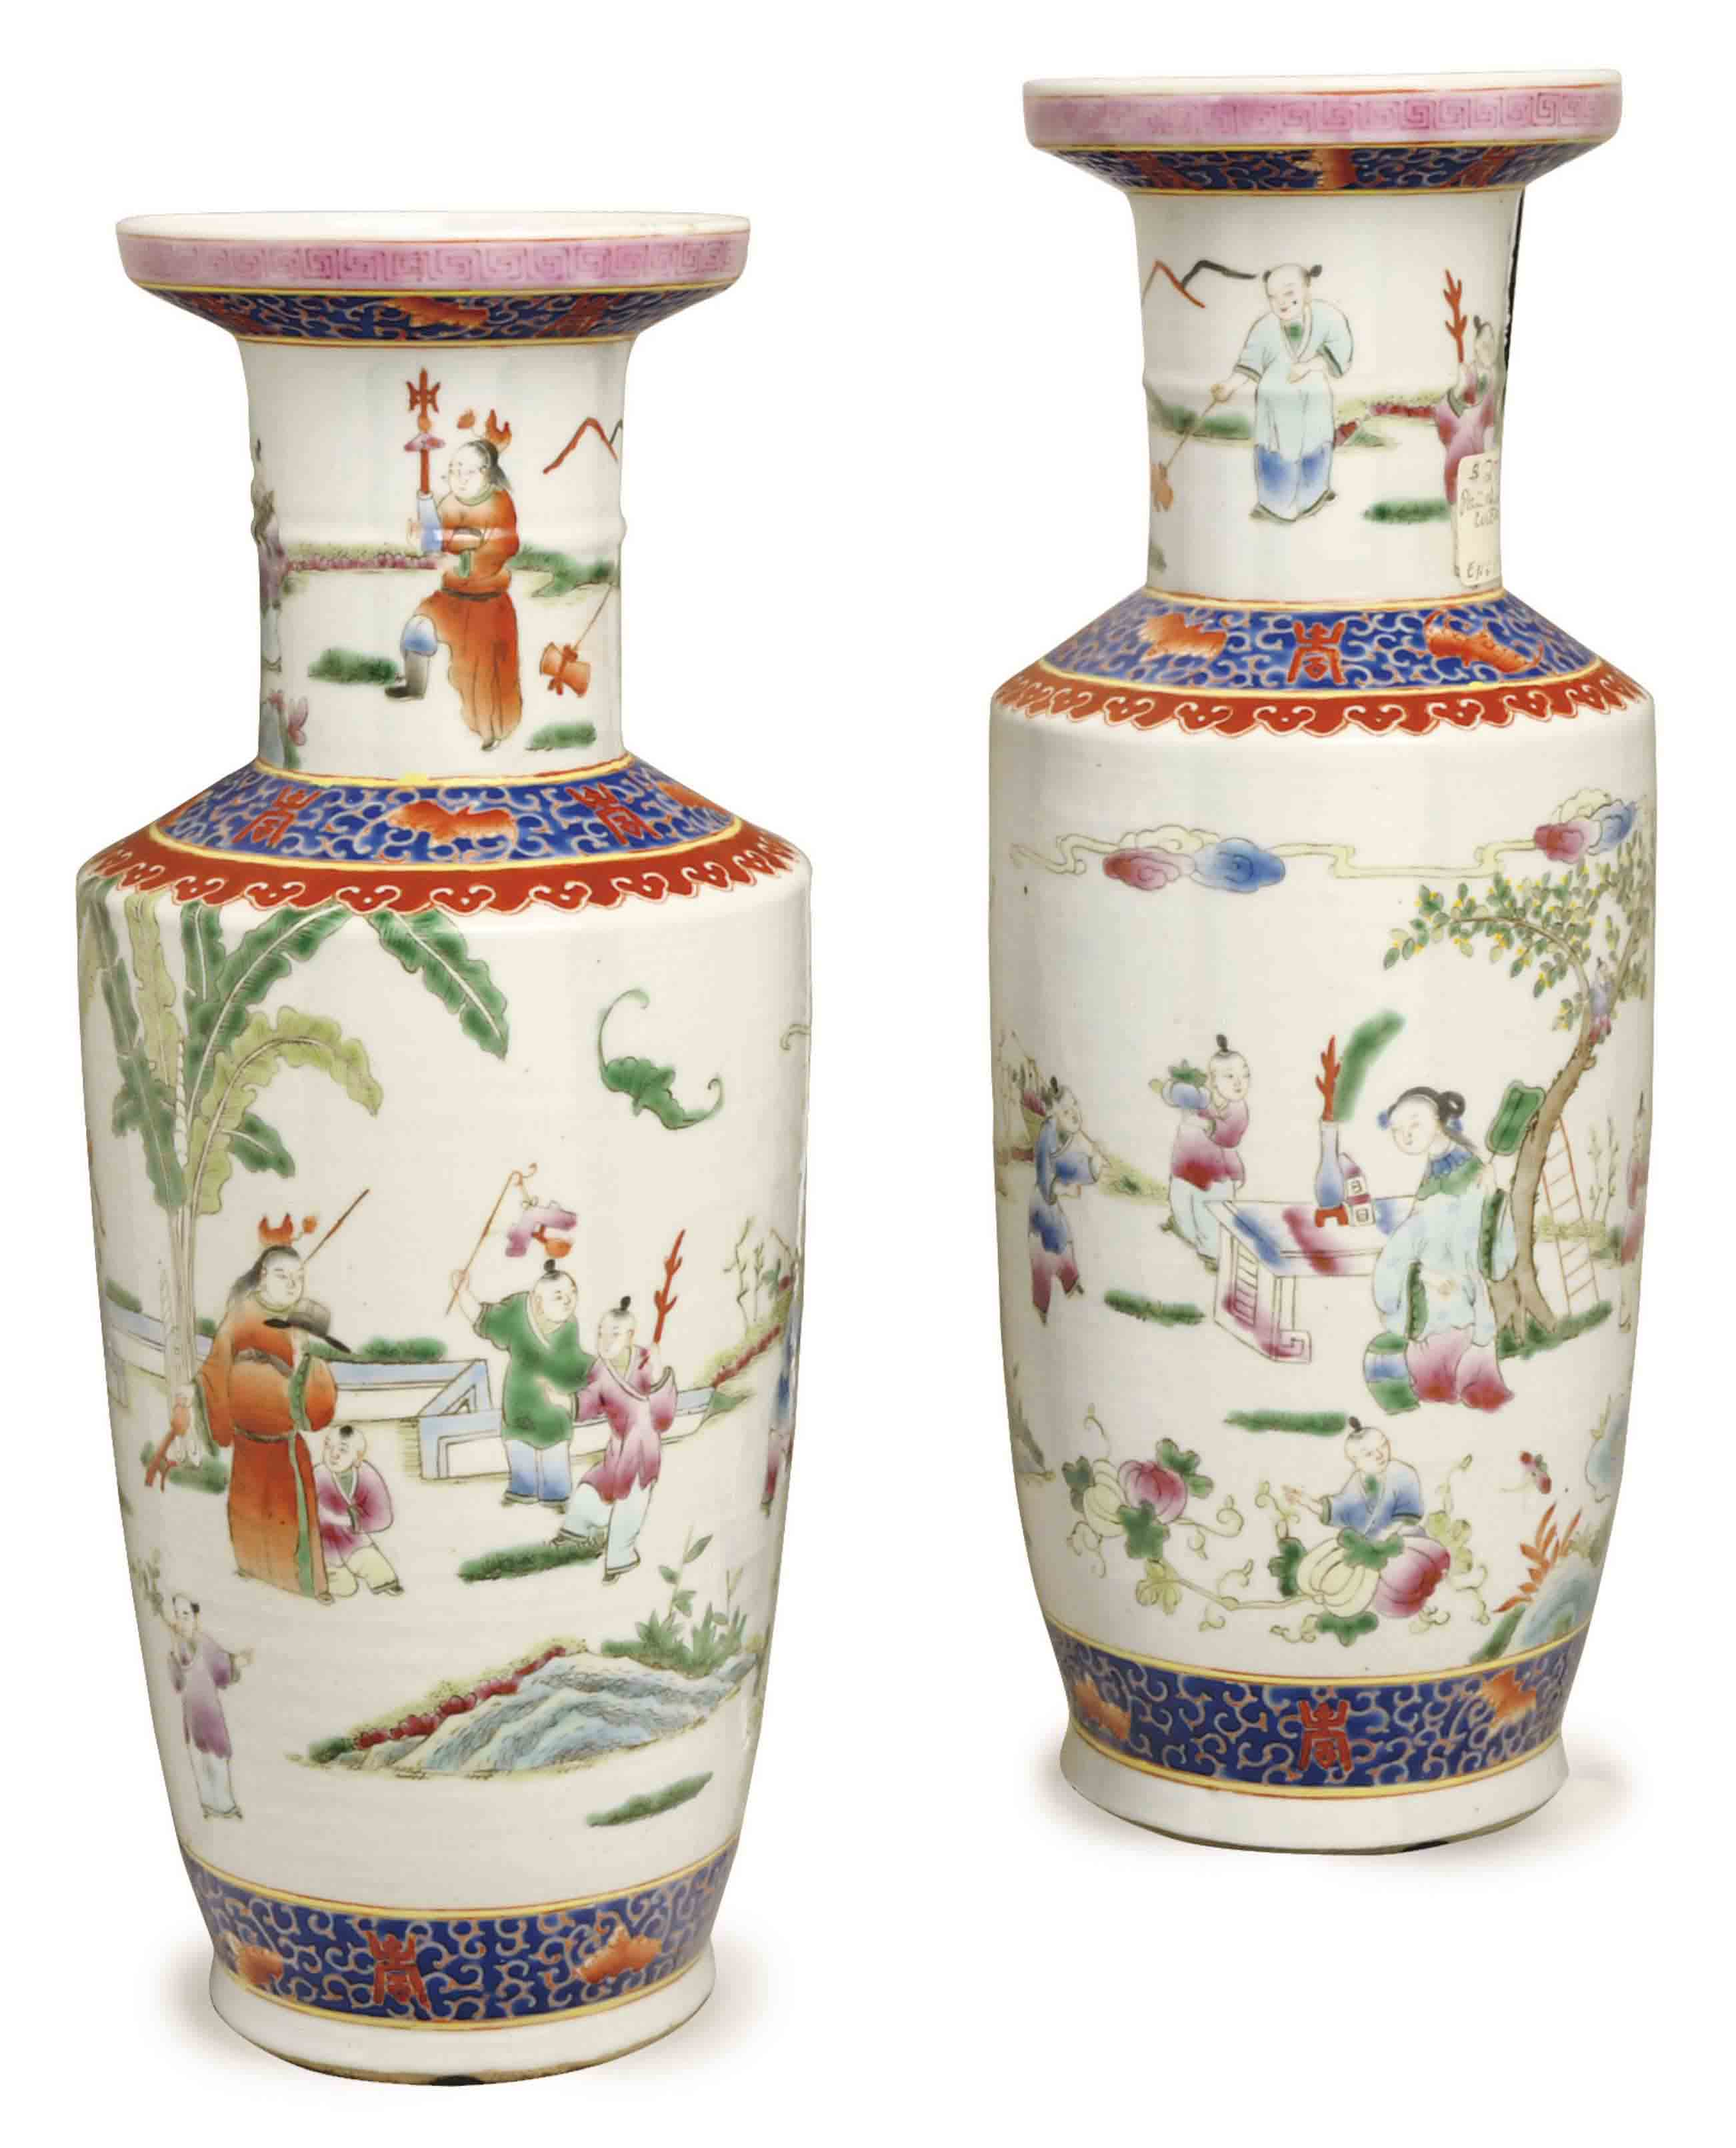 A PAIR OF CHINESE-STYLE ENAMELED PORCELAIN ROULEAU VASES,